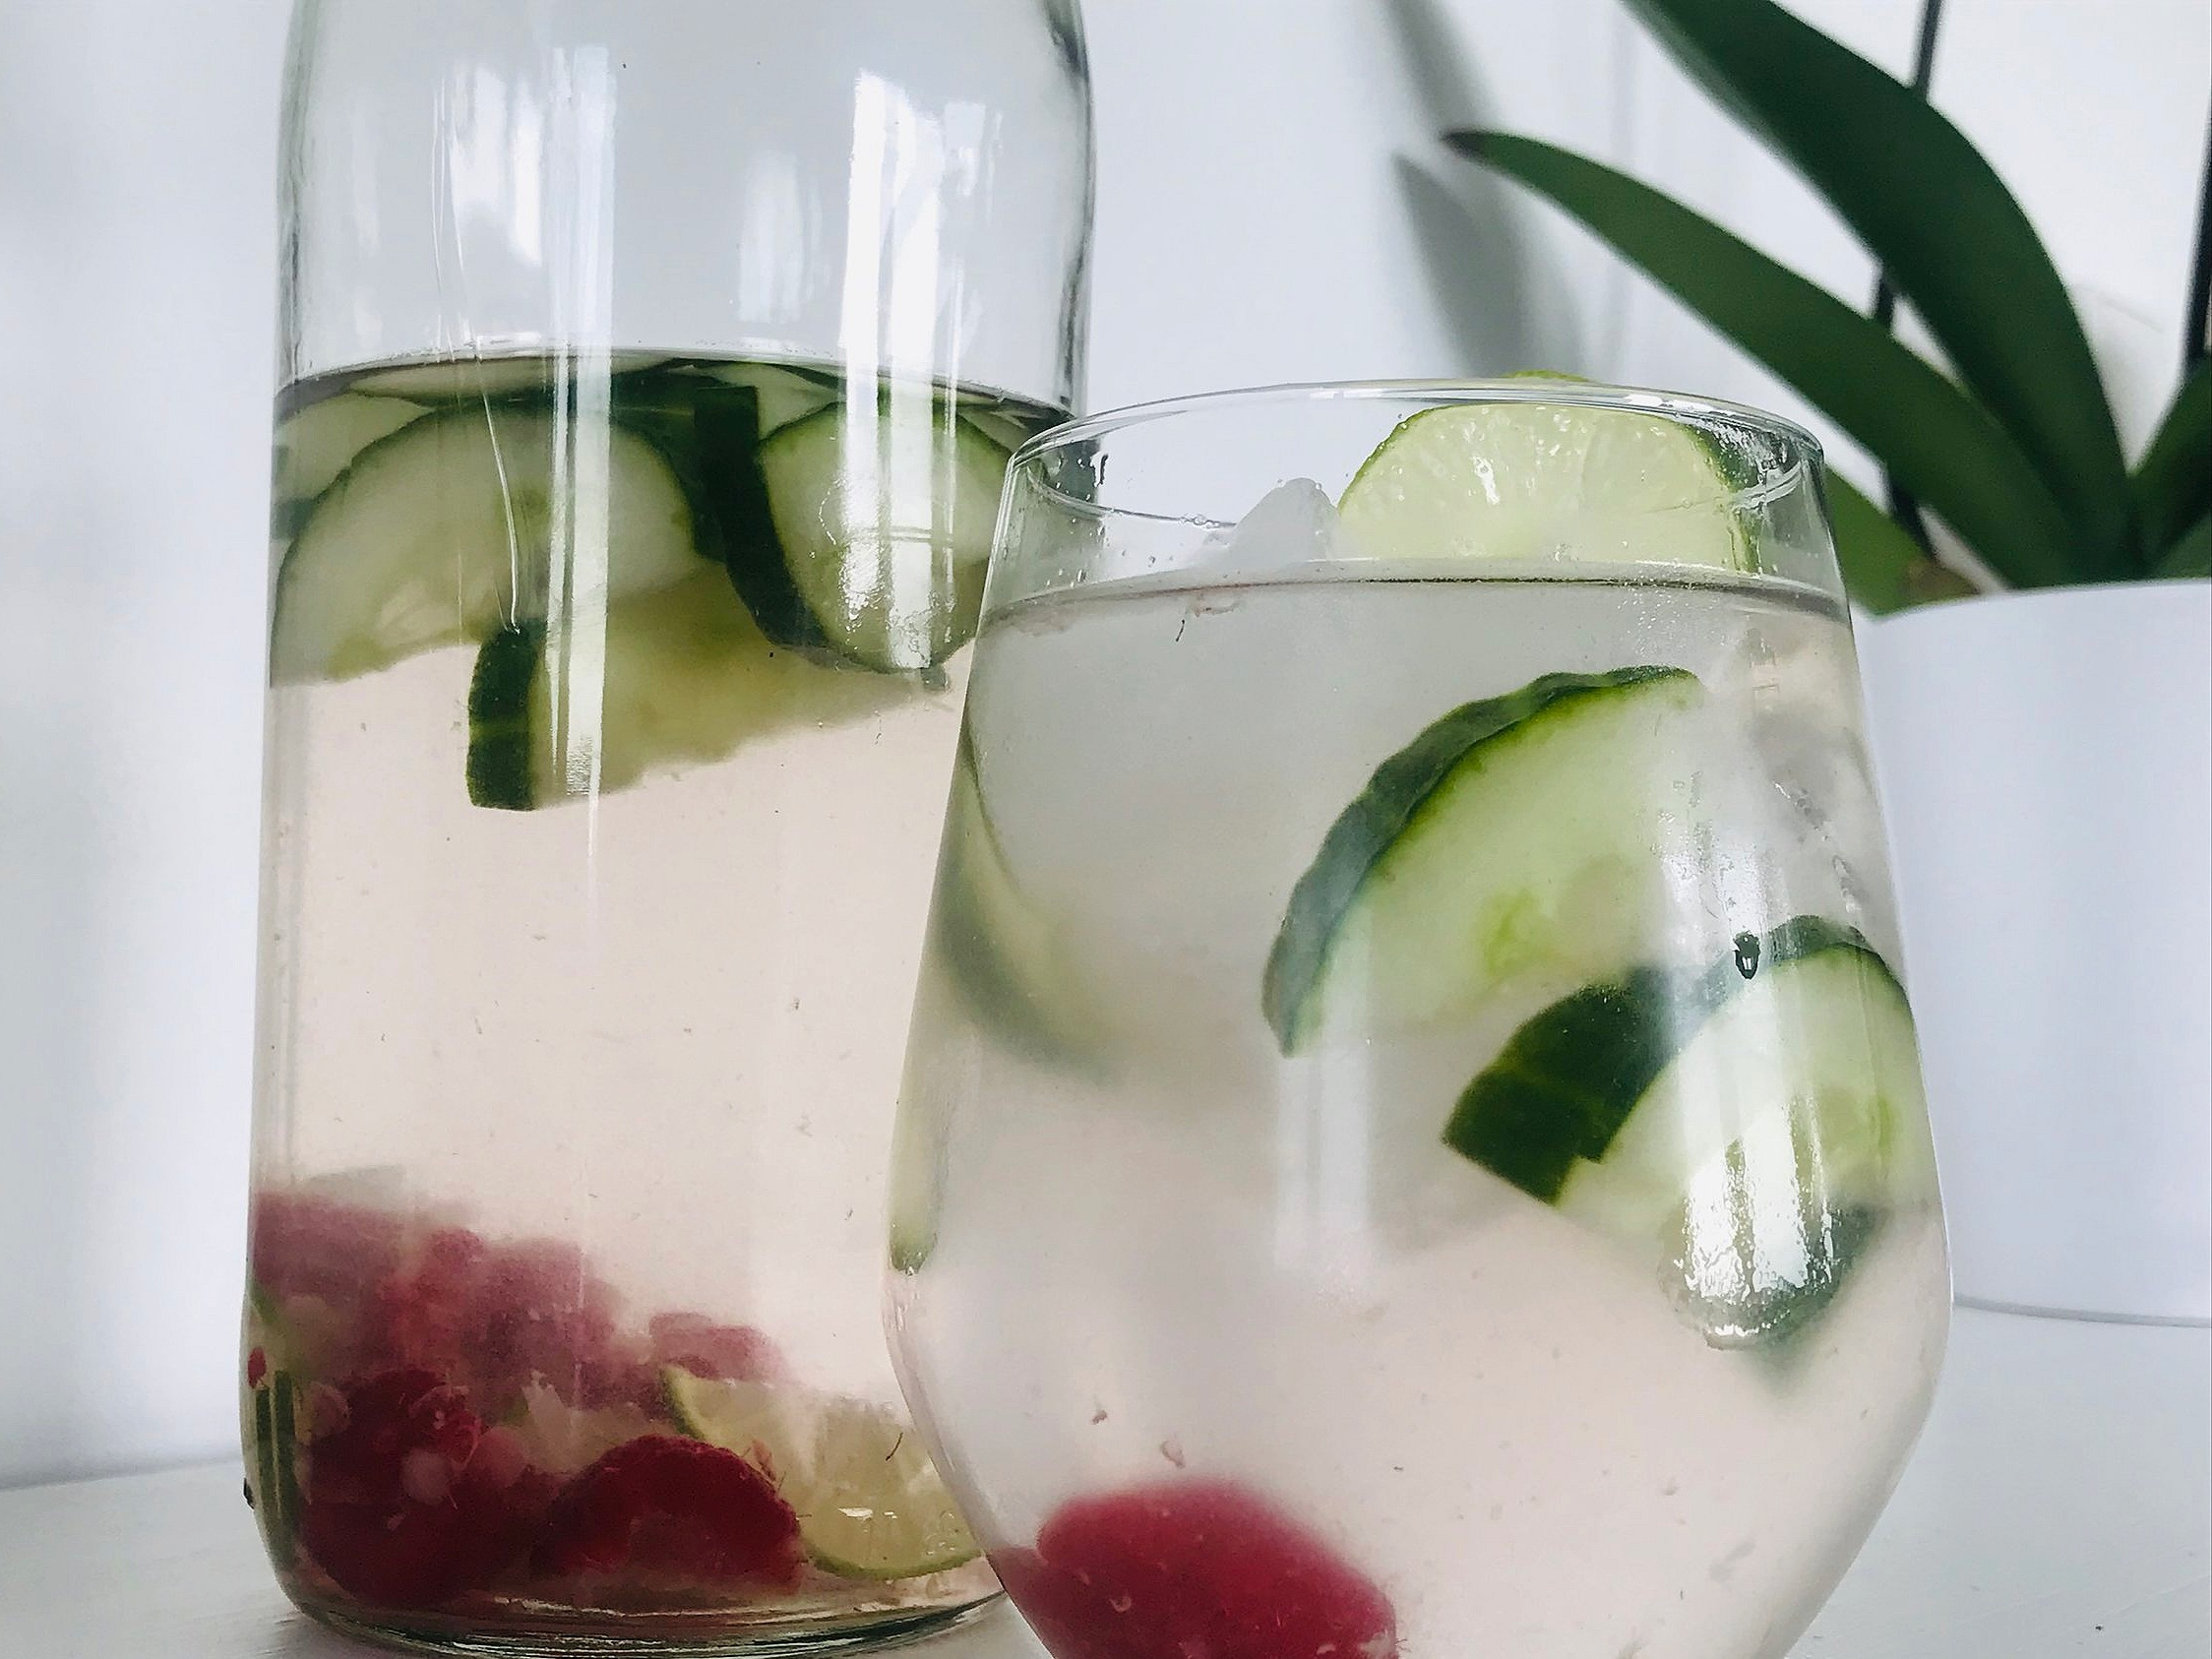 """EXTRA tips - If drinking water sometimes feels like hard work, check out these fun tips to help make it easier!• Add a squeeze of lemon or lime – sometimes just one drop of acidity can make water taste that much better and can assist in alkalinity (be mindful of your tooth enamel (use a steel or glass straw if adding citrus).• Bring the spa home with you! Add some cucumber, melon, or even berries into your water – mix it up to keep every sip interesting!• Invest in a reusable water bottle to keep with you. Make it a goal to fill it up multiple times each day.Drink a full glass of water first thing in the morning to stimulate digestion and rehydrate from the night.Don't wait until you feel thirsty to drink water; thirst is a sign of dehydration.If your a soda drinker, rather that water, to meet your hydration needs, you may prefer to opt for water with fresh fruit (lemons, limes, berries etc) rather than sugar-sweetened beverages! (*even the """"sugar free"""" still come with health risks)"""